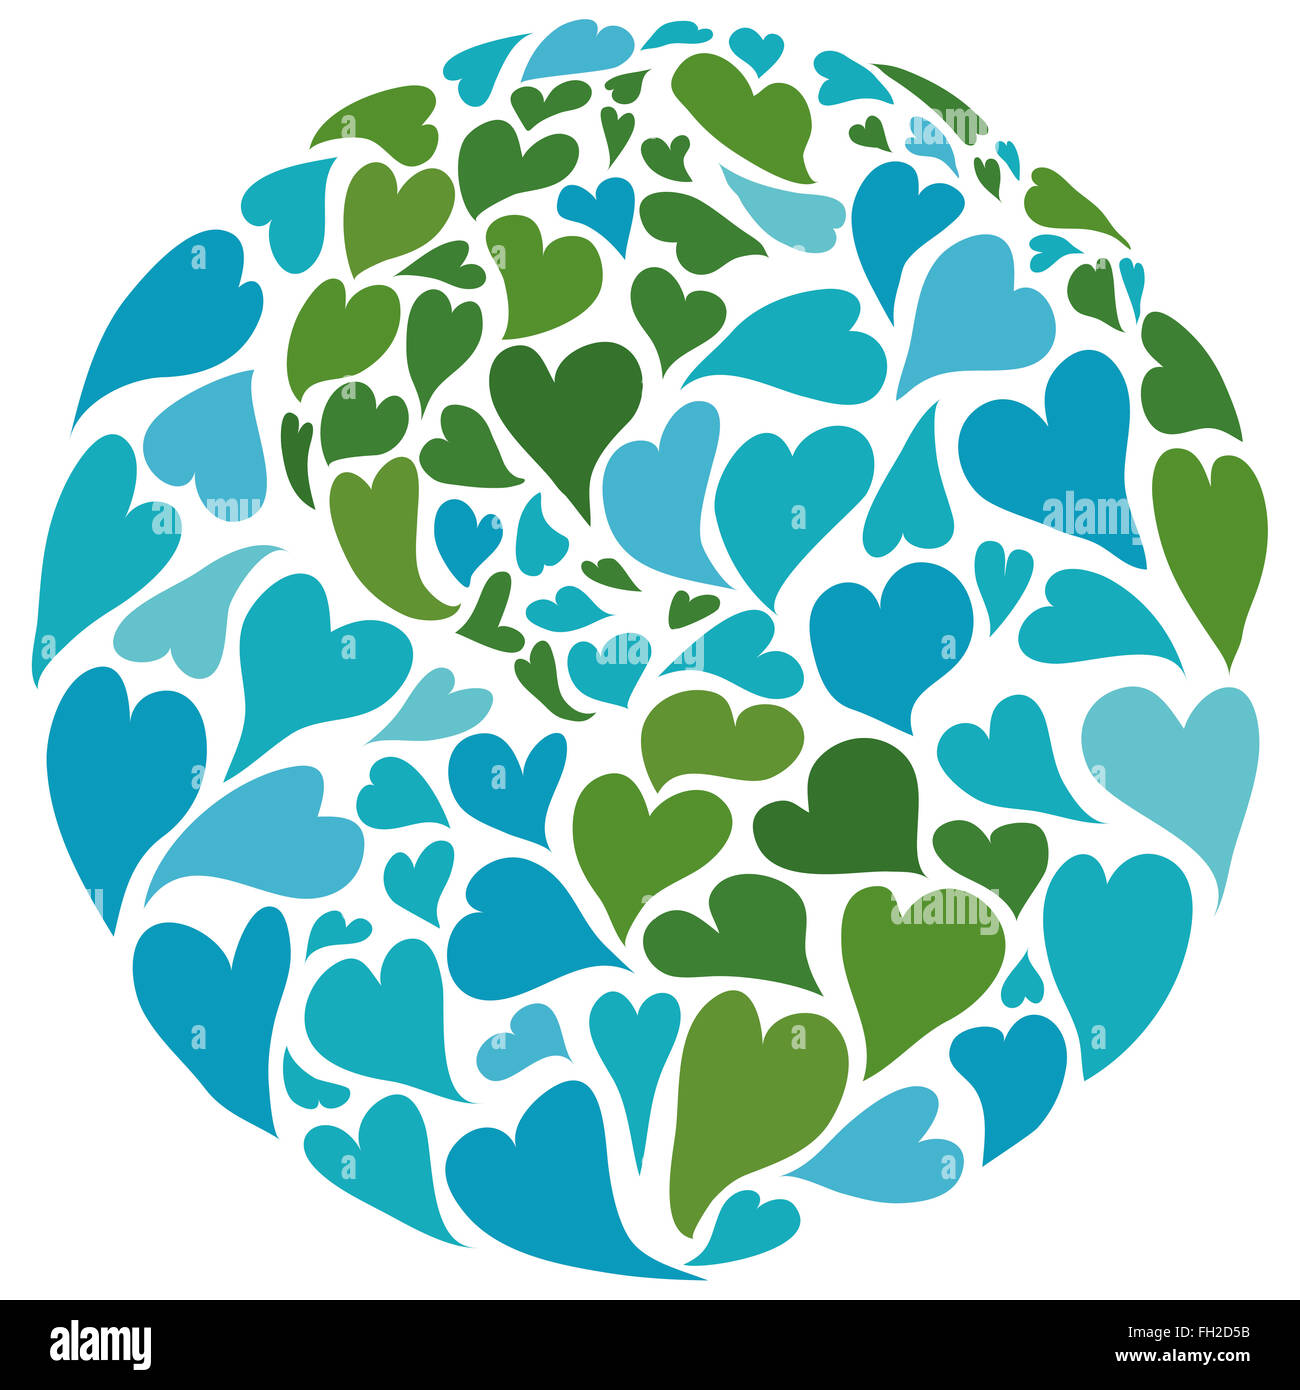 Planet earth made of hearts. Symbol of peace. America in the center. - Stock Image